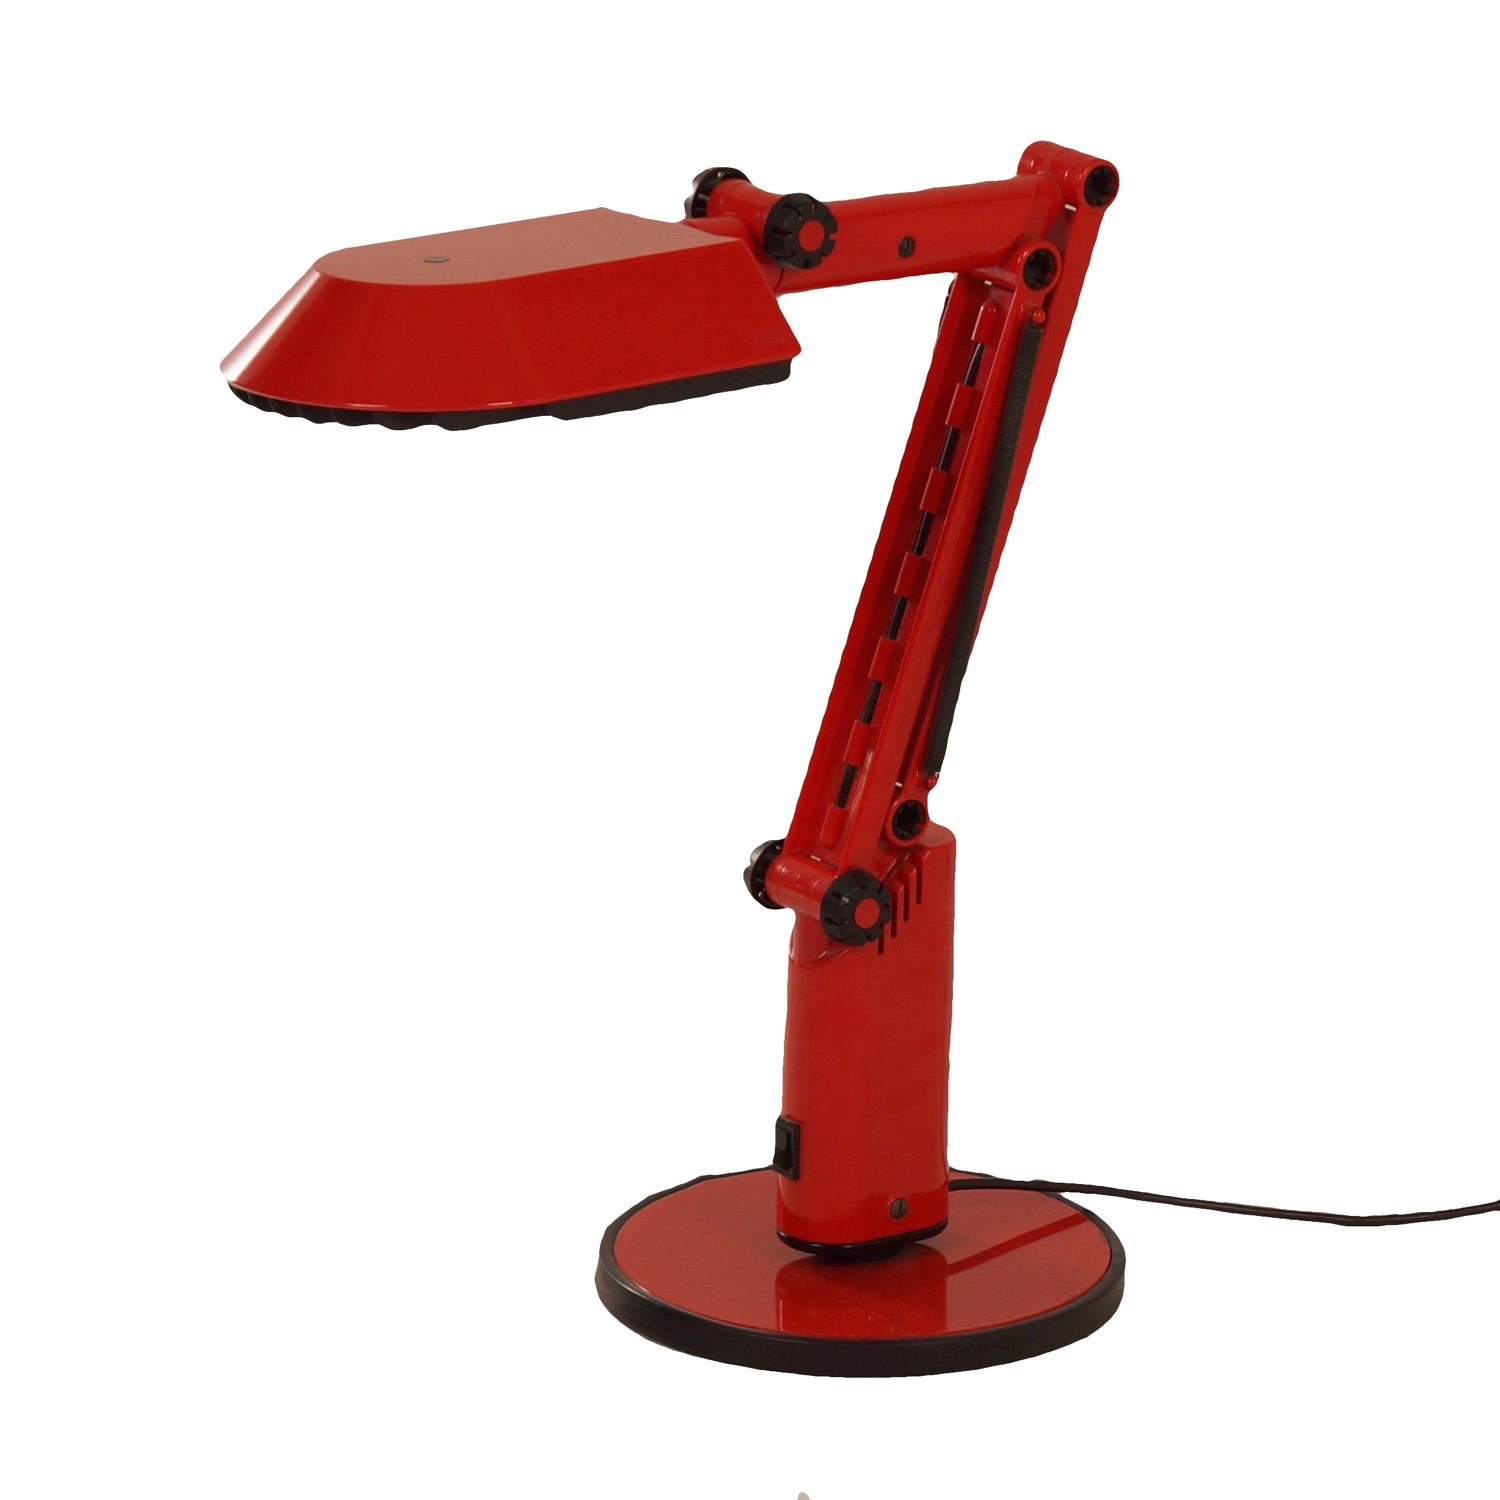 Vintage Red Desk Lamp by Ahlstrom  Ehrich Design for